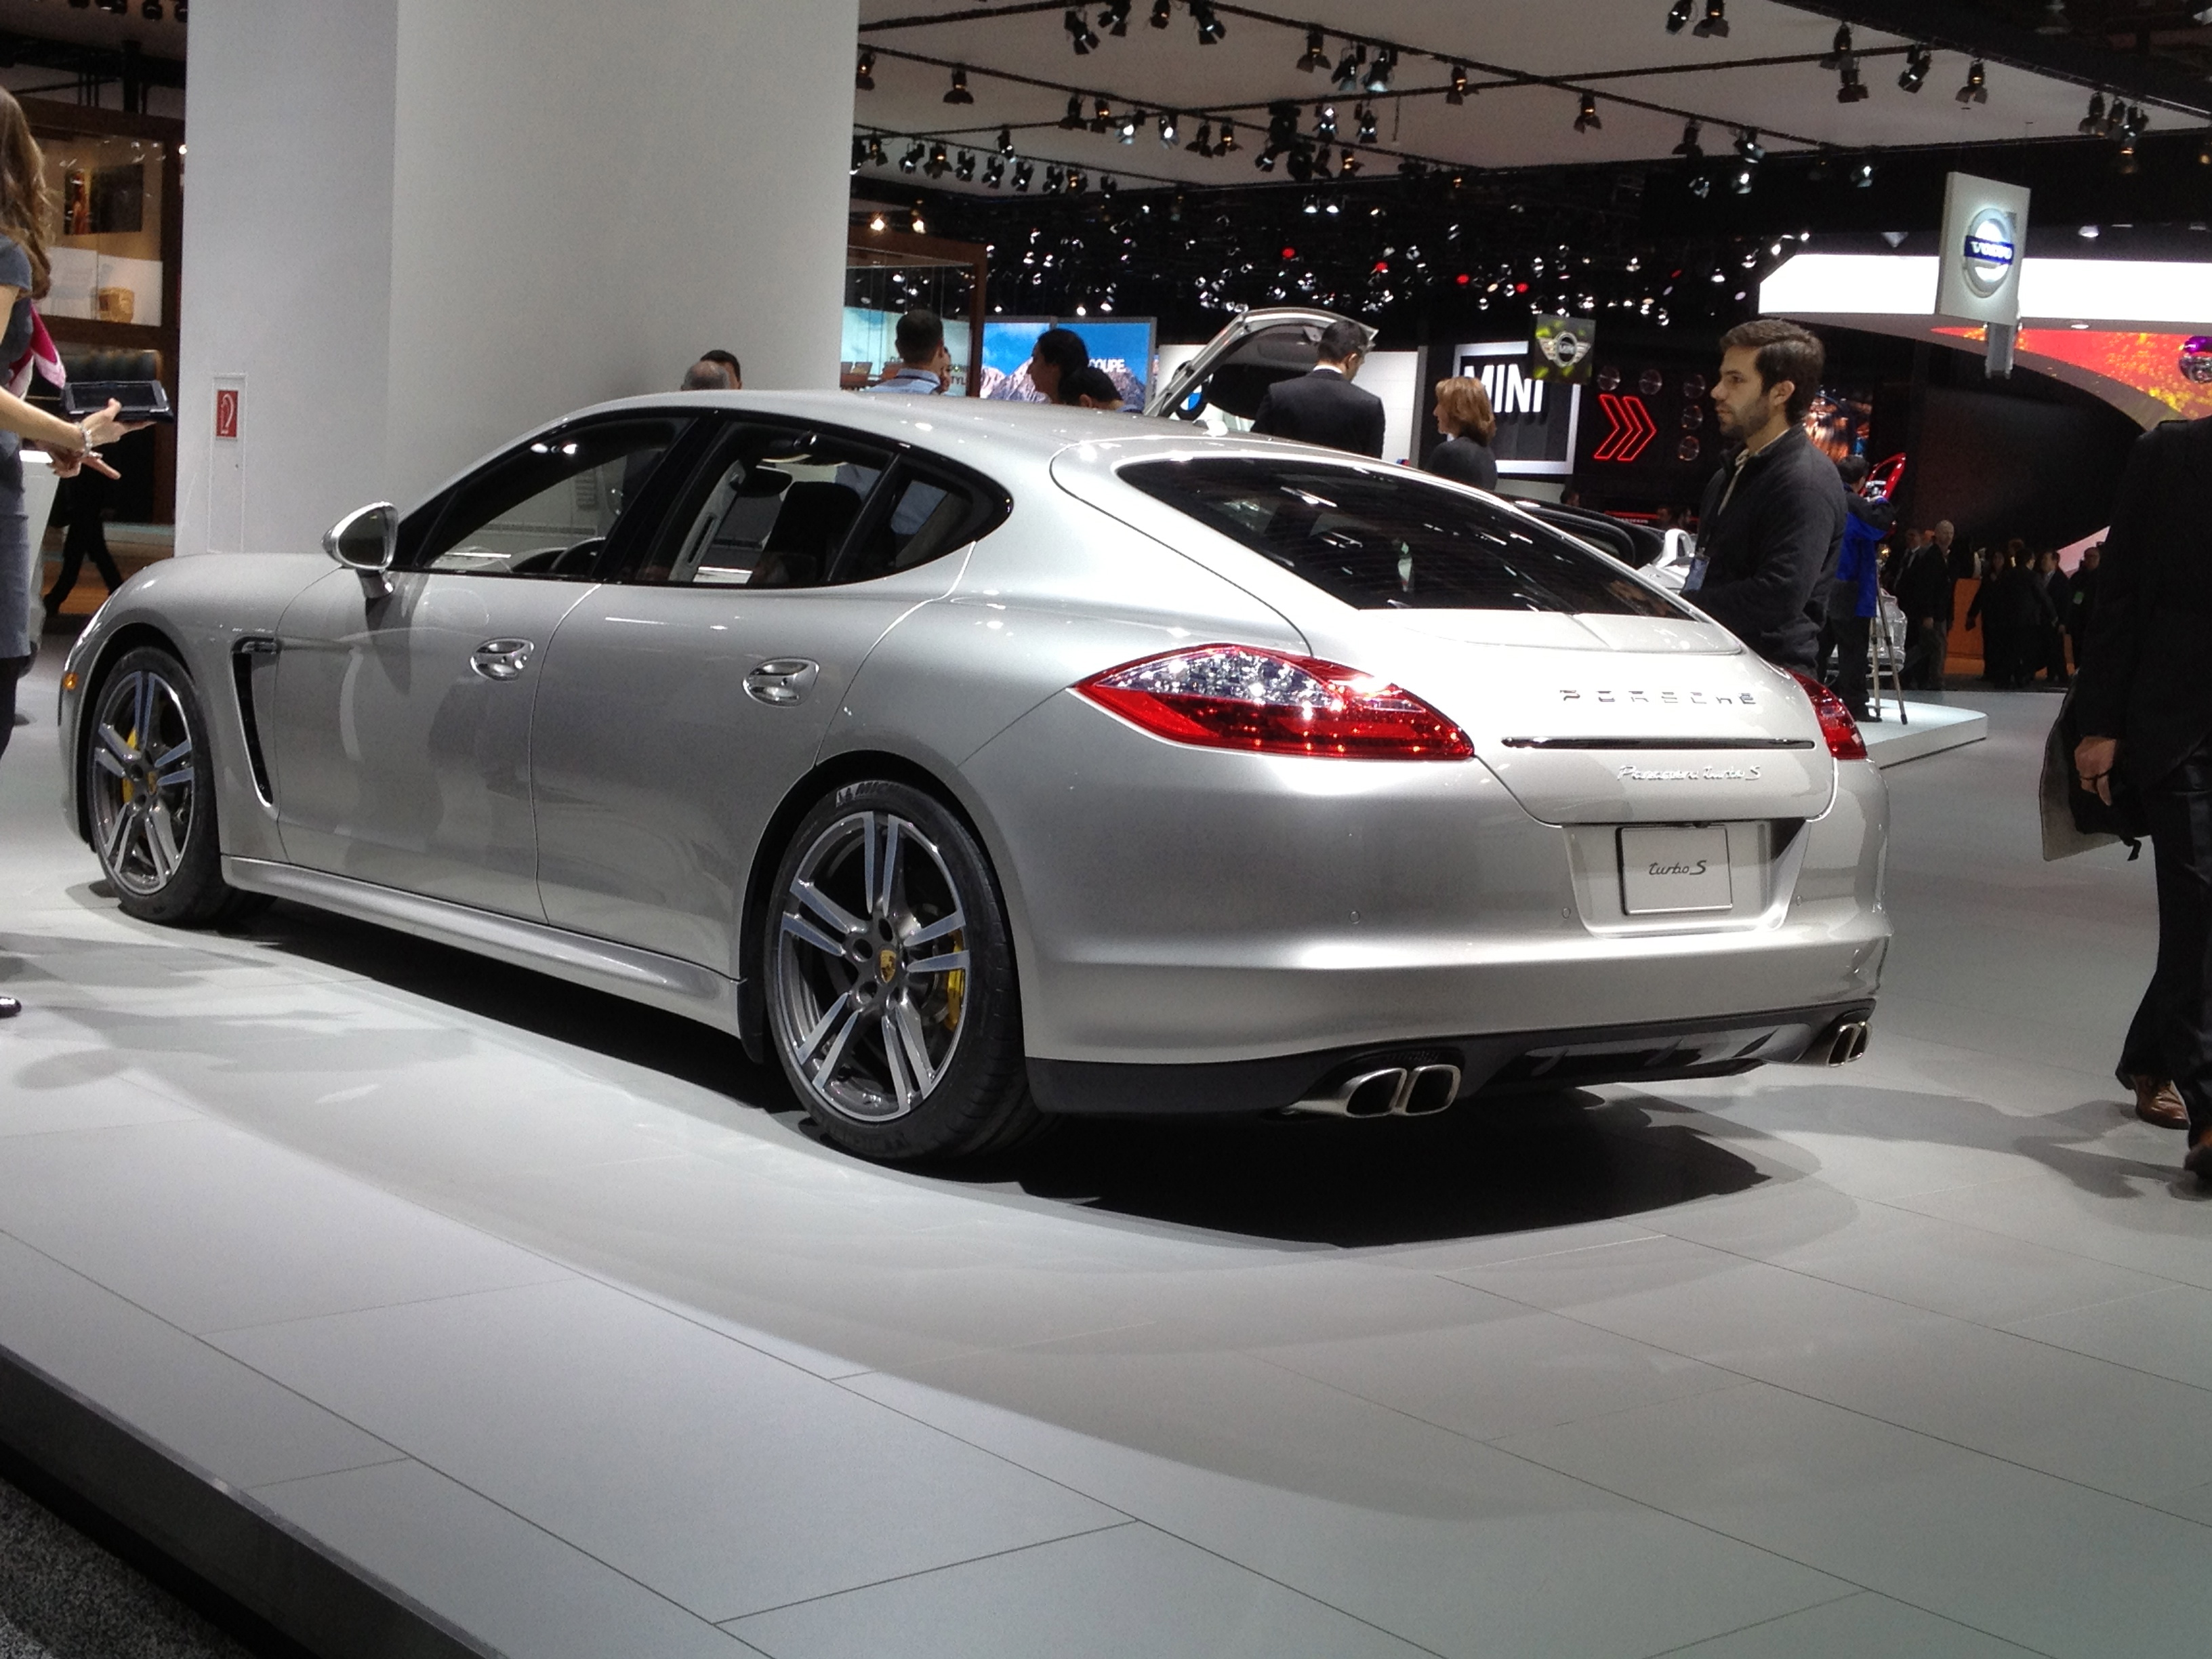 2013 Porsche Panamera at NAIAS 2013 By ecokarenlee